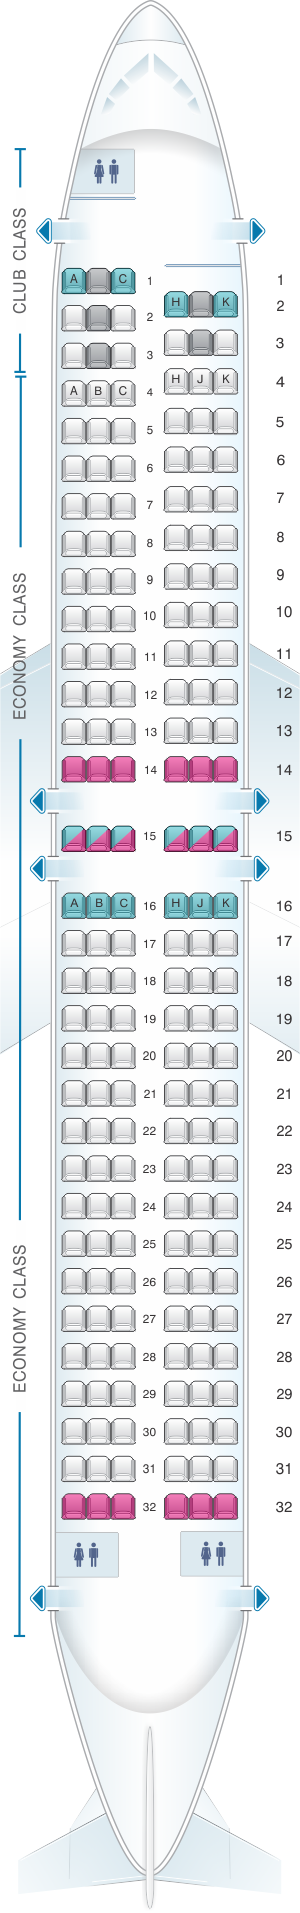 Seat map for Air Transat Boeing 737-800 Canada